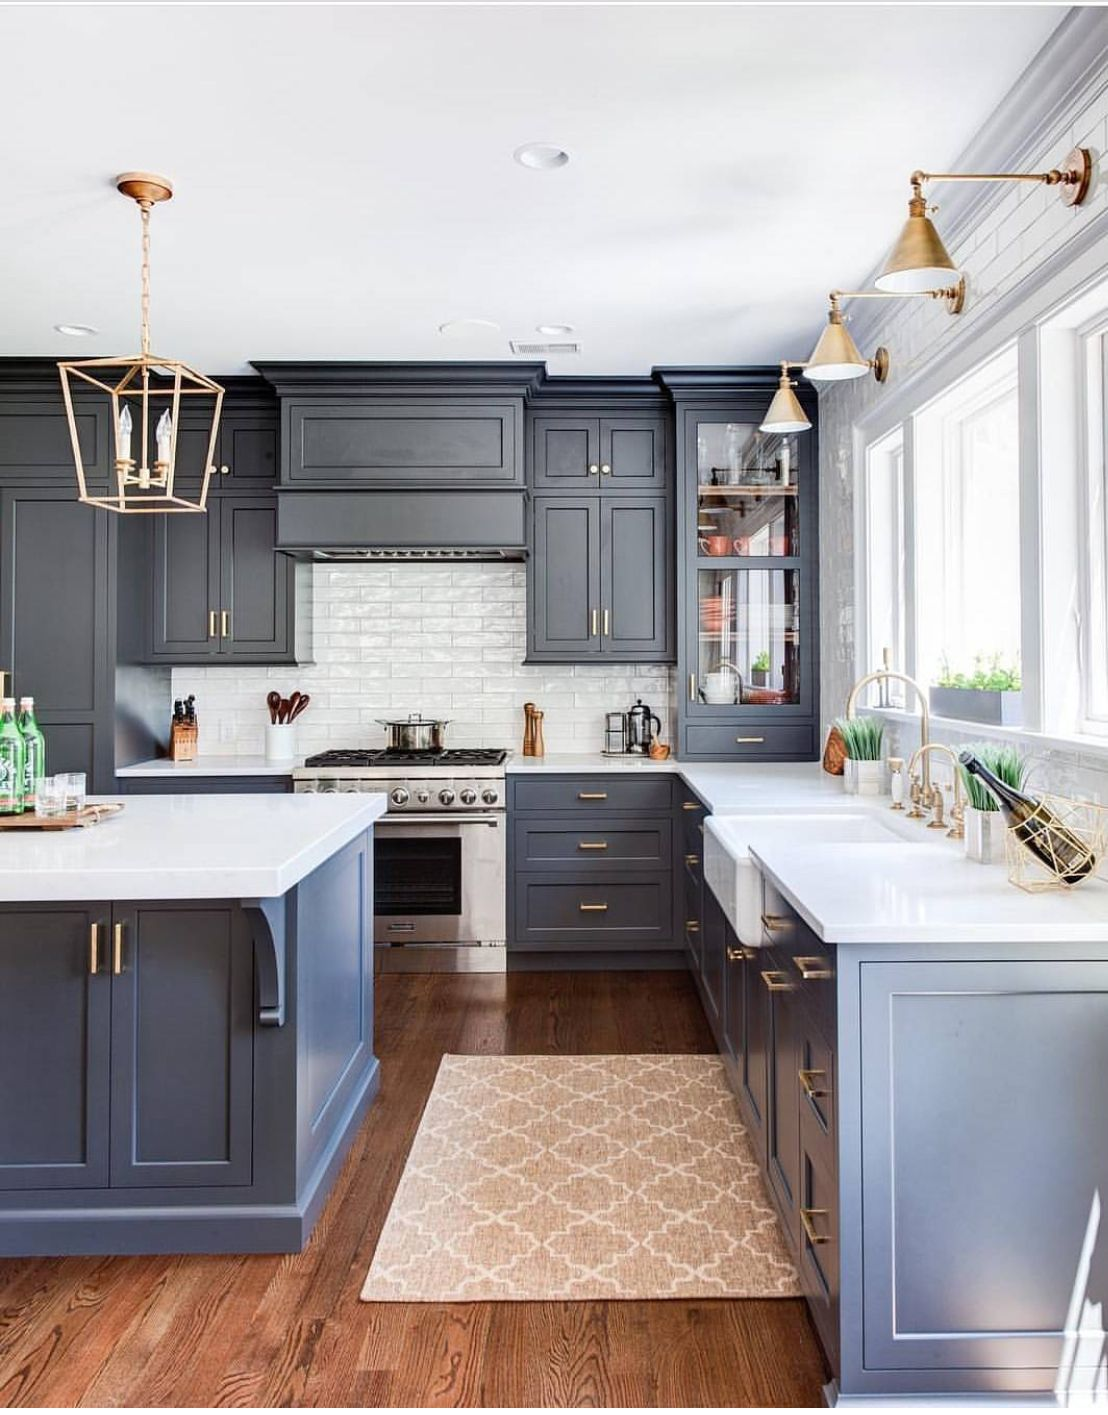 Pin by Beth Faga on Kitchens   Pinterest   Kitchens, Farm house and ...